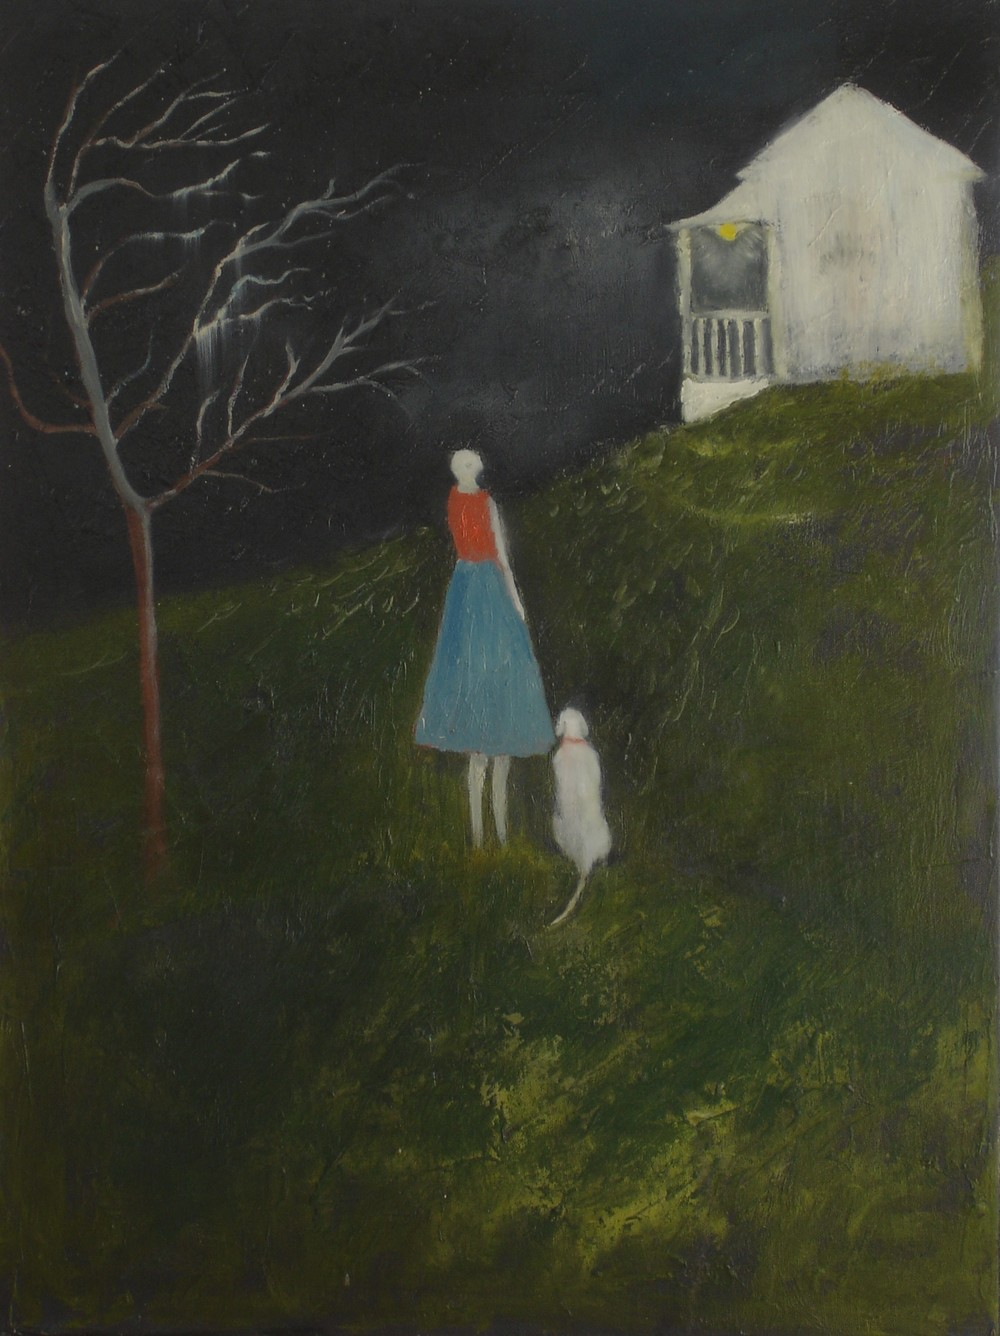 Porchlight by Jeanie Tomanek